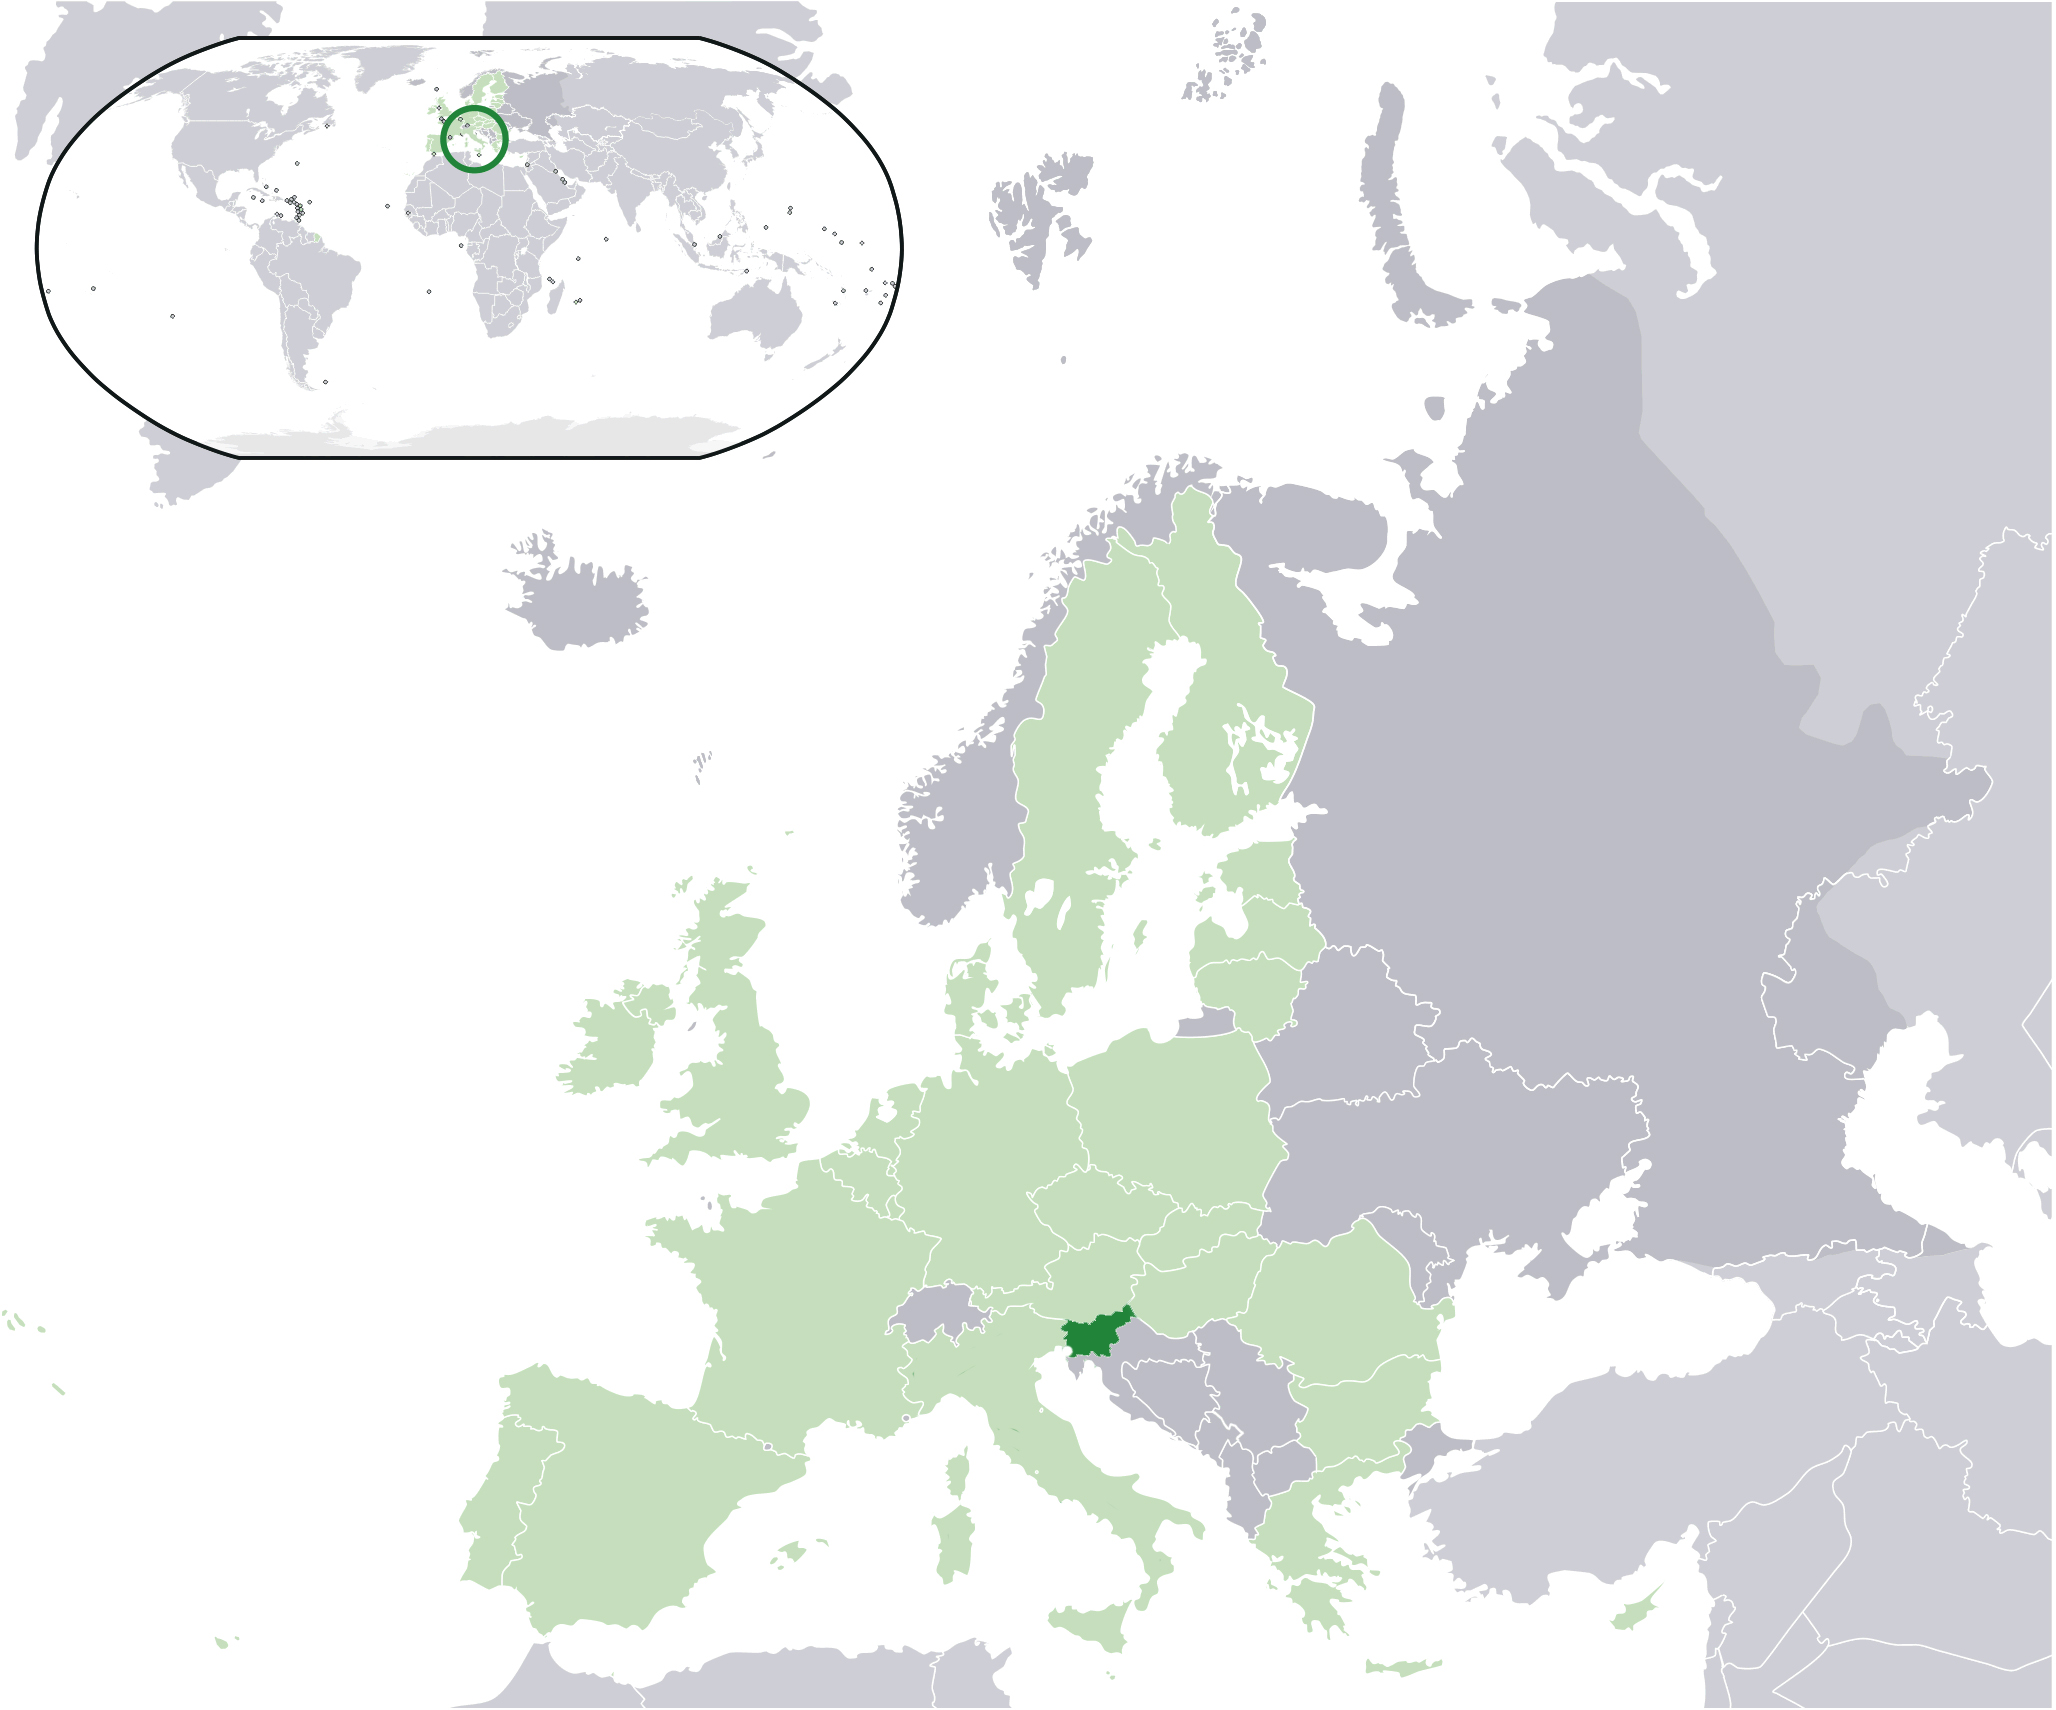 FileLocation Slovenia EU Europepng Wikimedia Commons